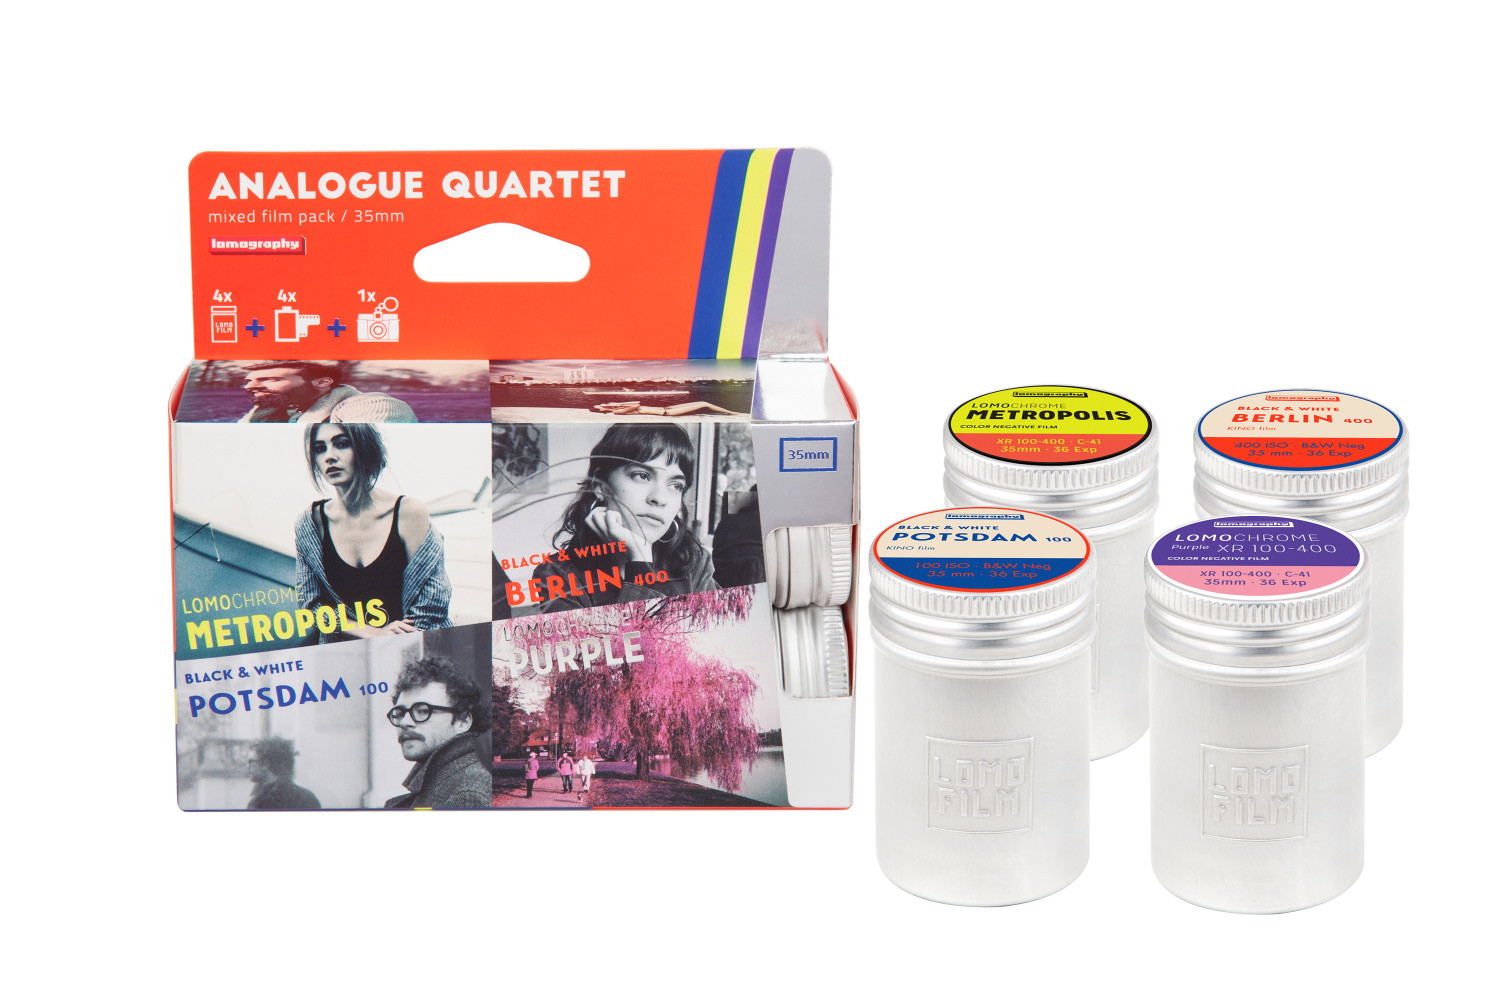 Analogue Quartet (Pic: Lomography)